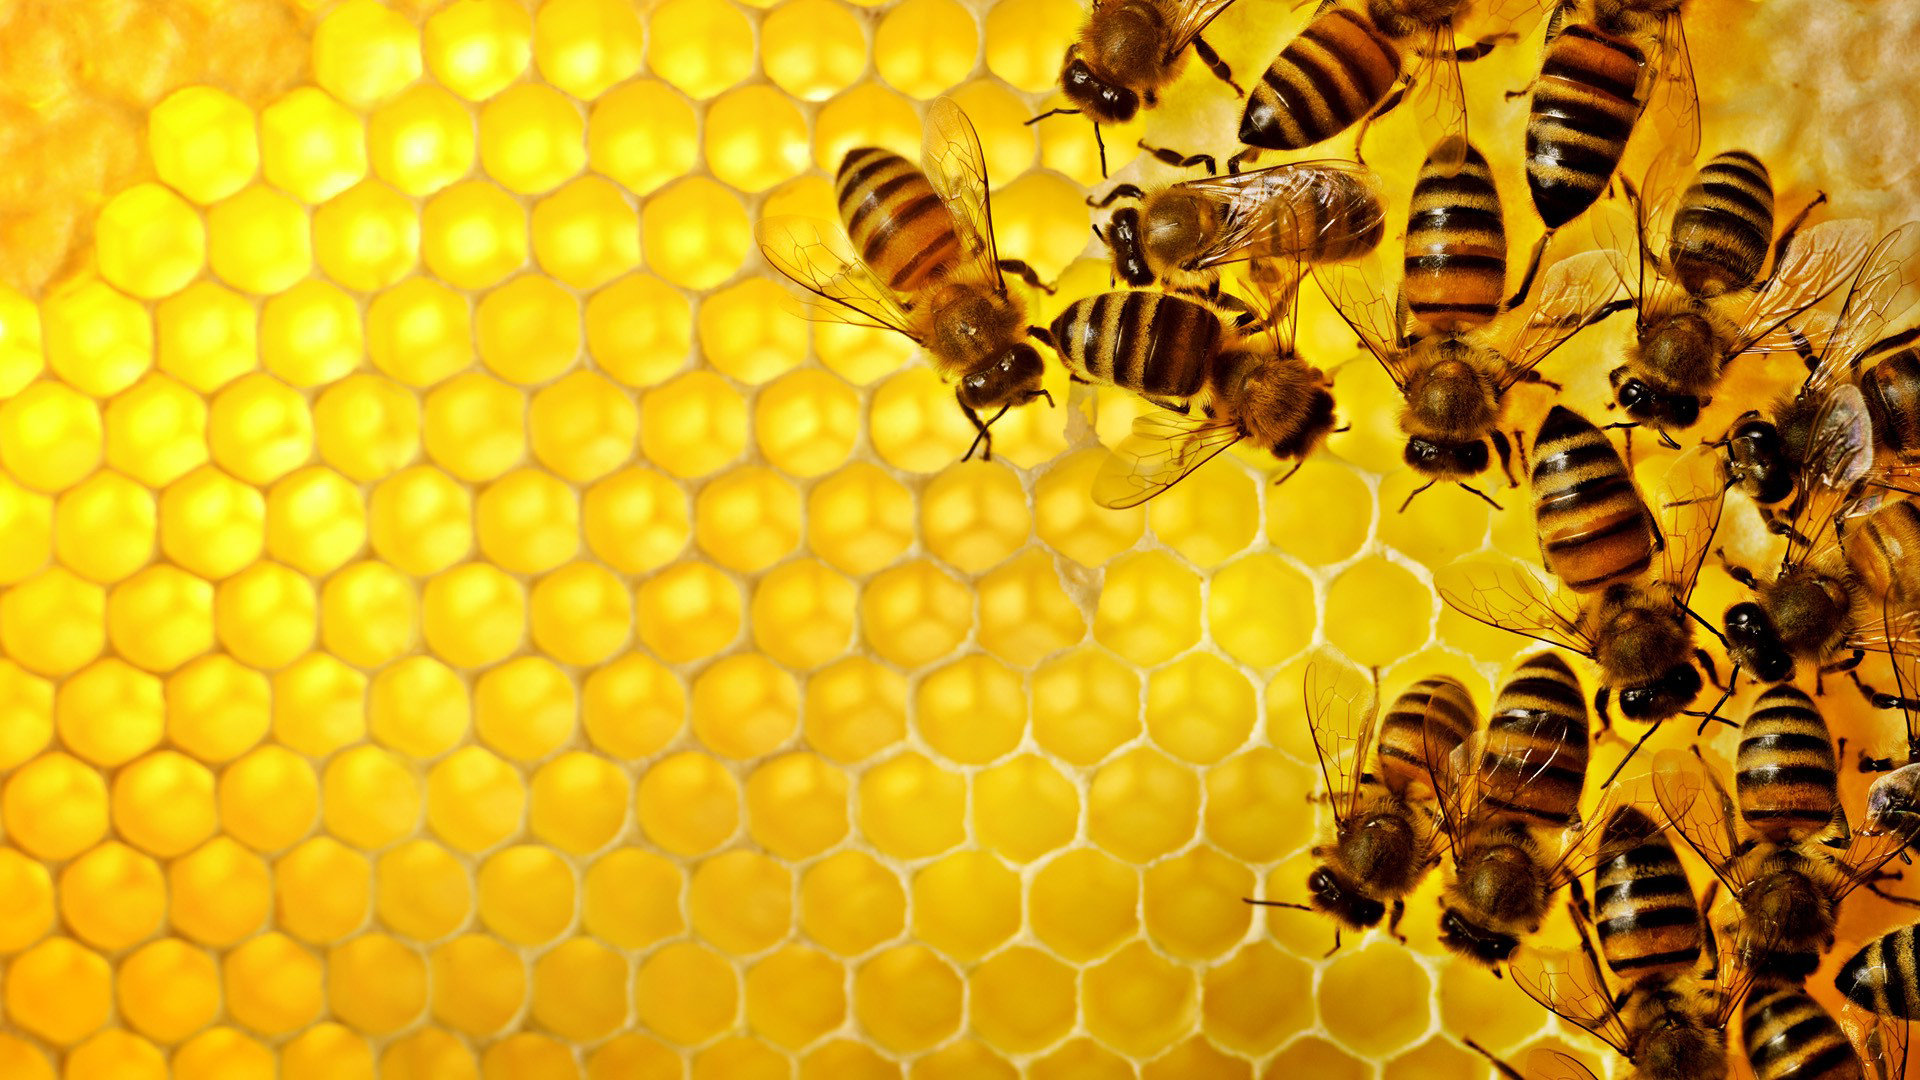 Download hd 1920x1080 Bee desktop wallpaper ID:460878 for free